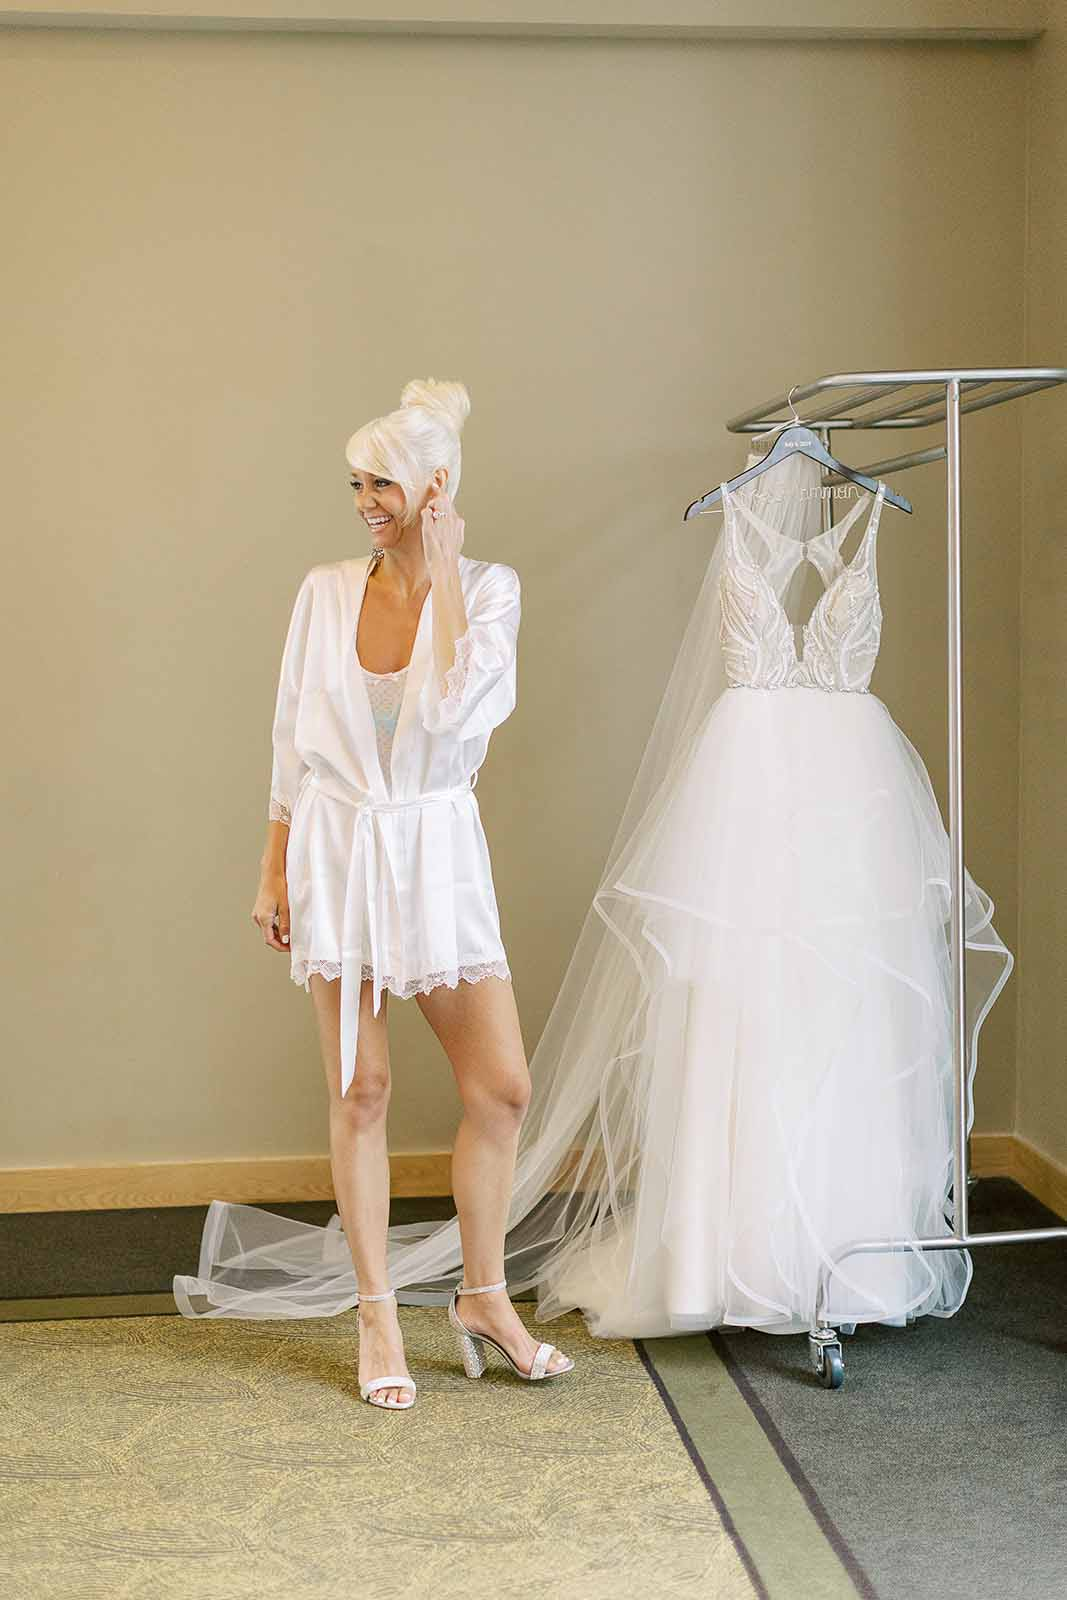 Bride in robe getting ready to put on her wedding dress for a formal ballroom wedding ceremony